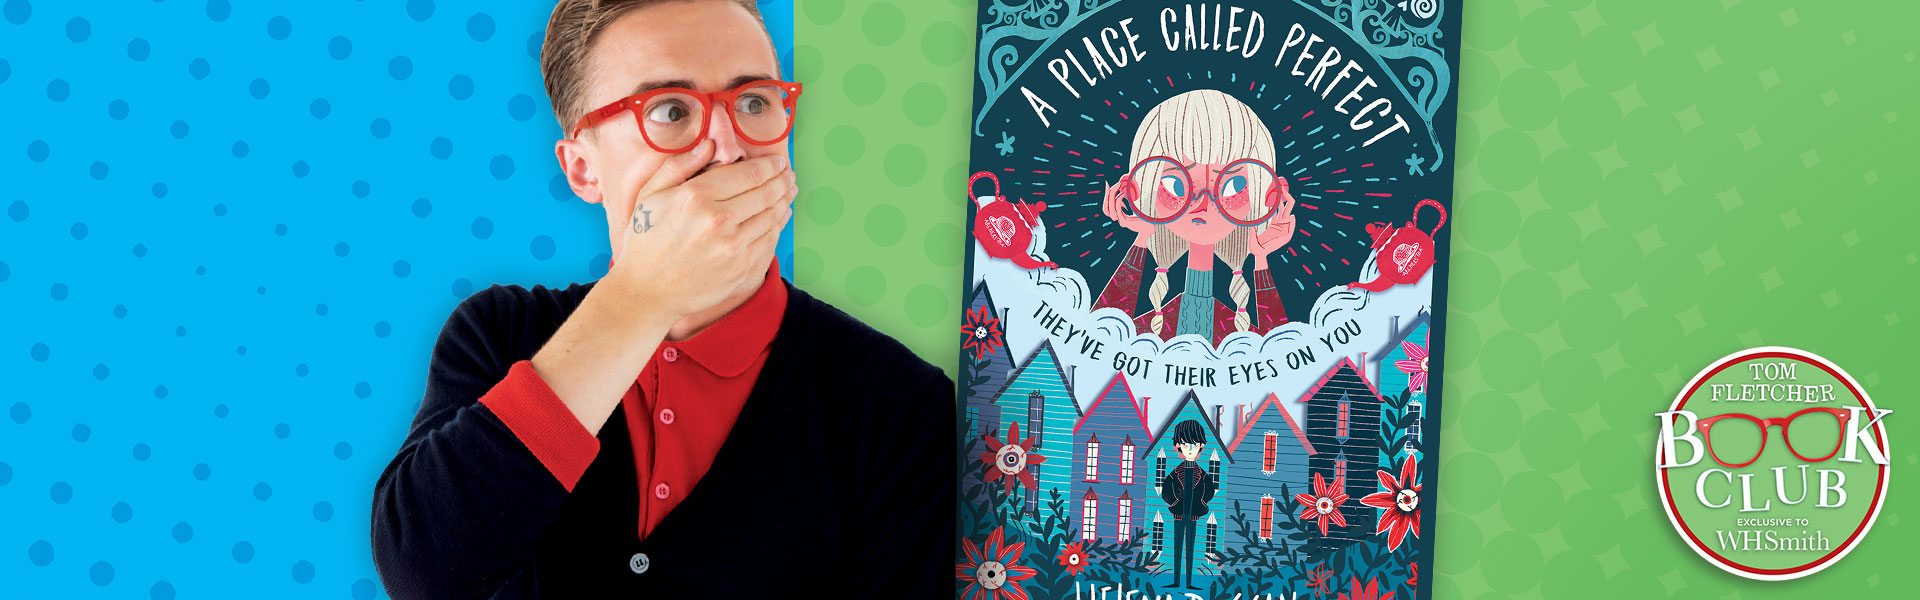 Tom Fletcher Book Club: A Place Called Perfect by Helena Duggan